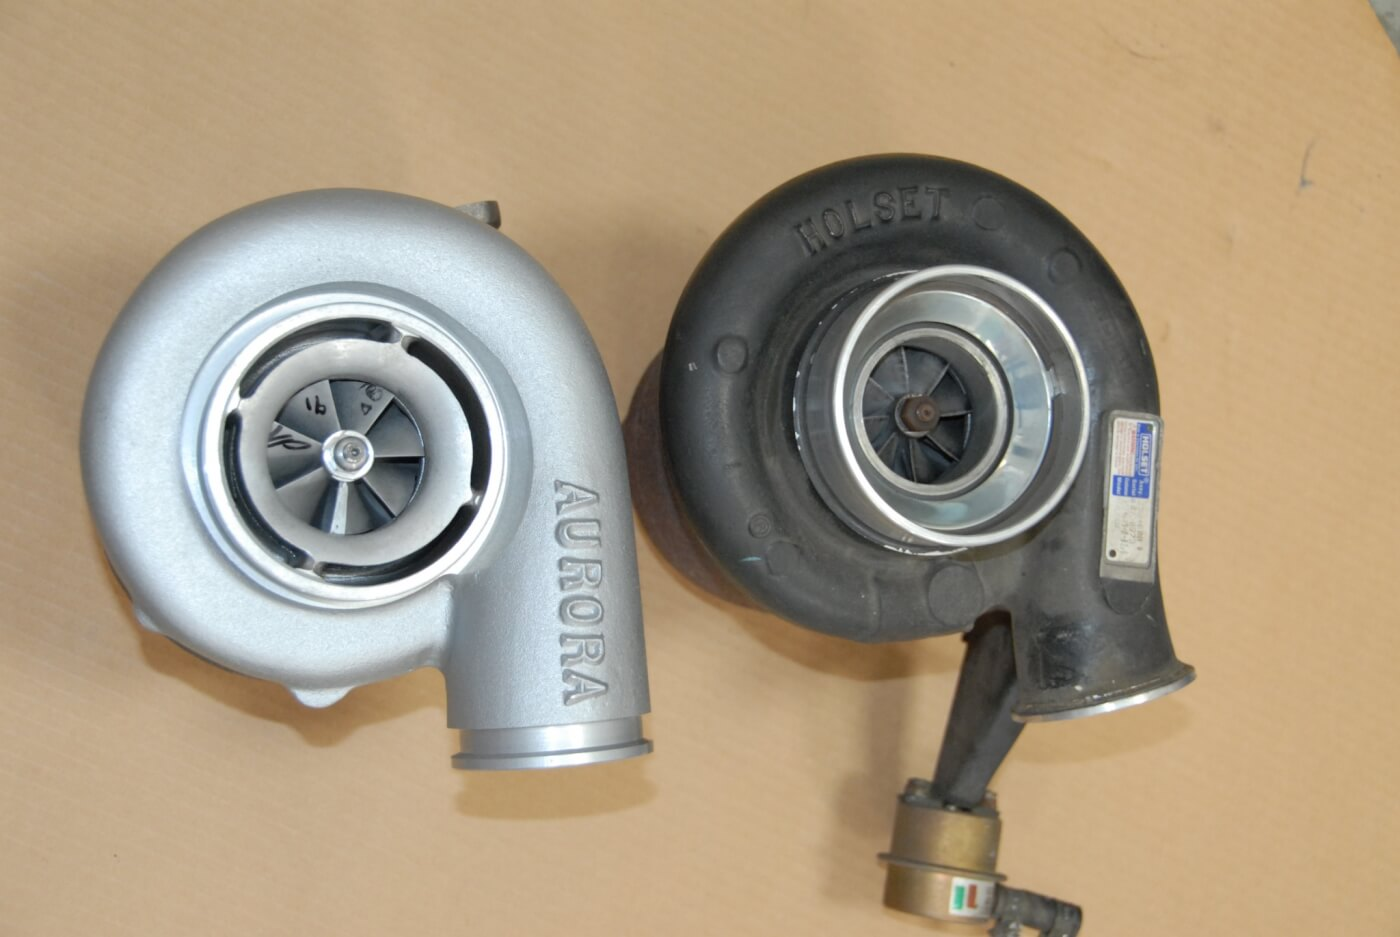 2. This close-up shows the differences between the Aurora 2000 turbo, next to the stock Holset unit. Besides the lack of a wastegate, note the larger discharge outlet on the Aurora, and slightly different exit angle, which allows air to exit more quickly from the compressor wheel. In addition, there's an inducer or bleed ring (the gap at the perimeter) to enhance the width of the boost map. And the compressor vanes have extended tips and a steeper pitch.